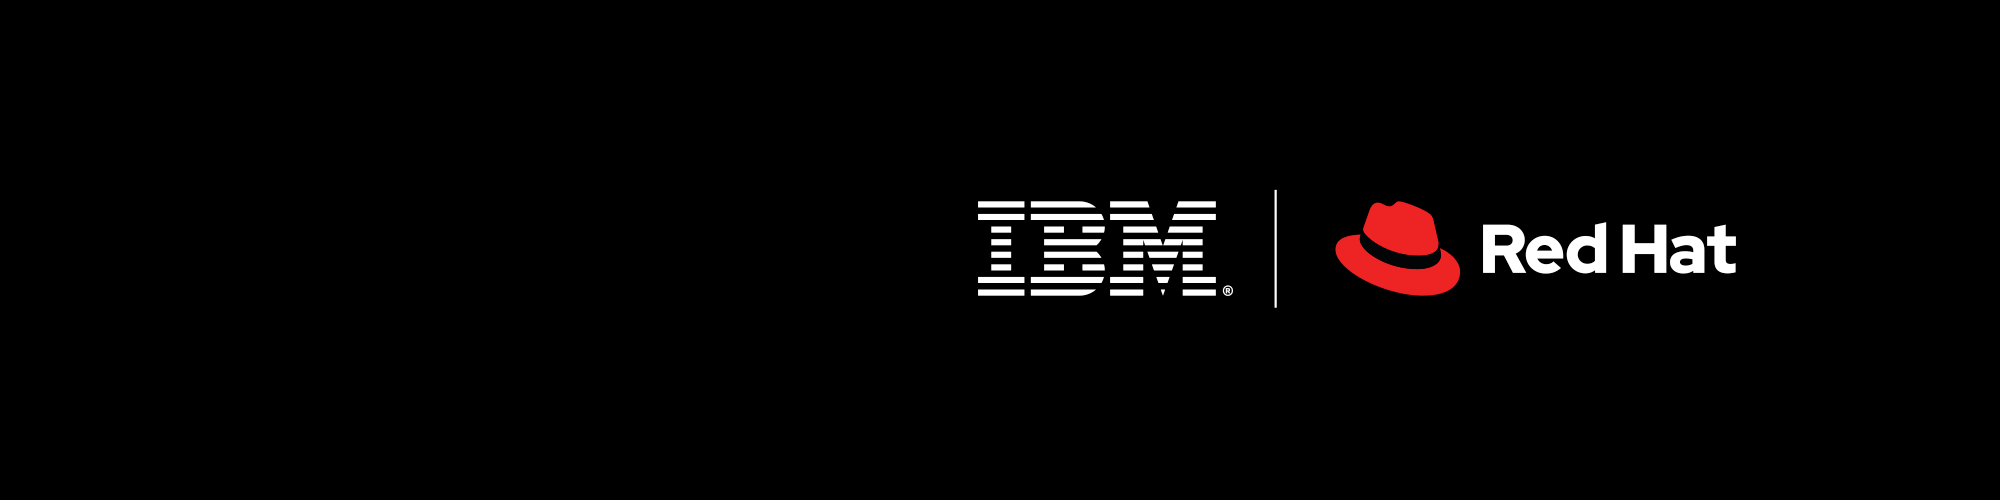 Logo Red Hat z IBM